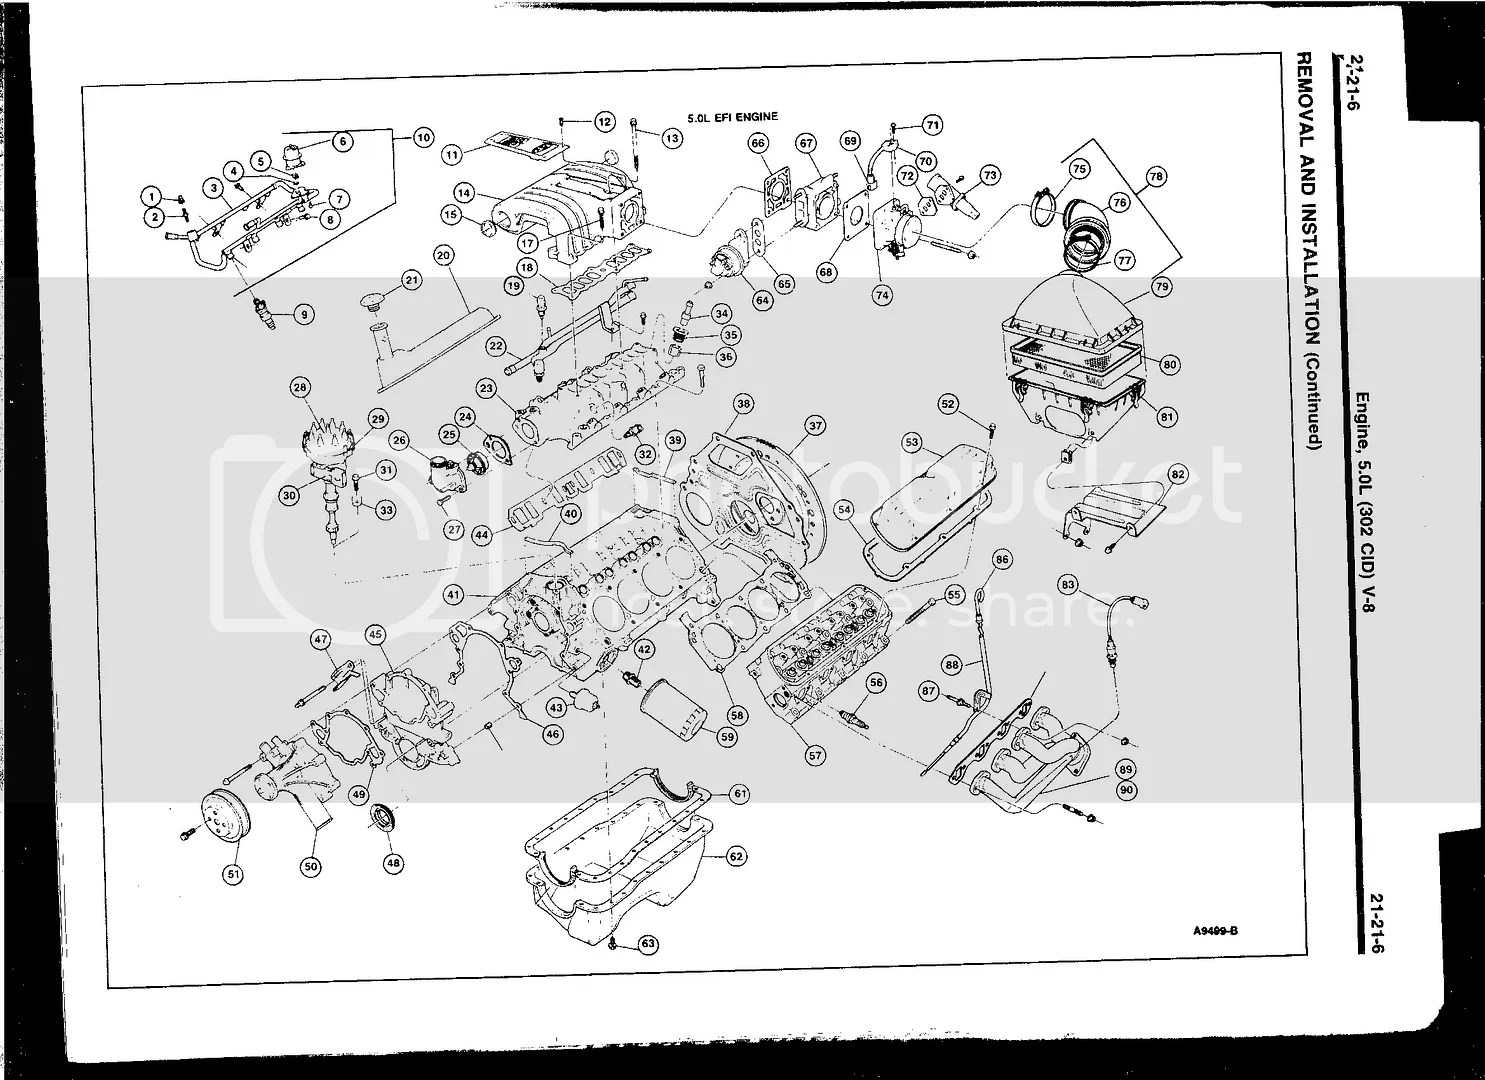 Diagram Or Picture Of 302 Assembly Front Accessories